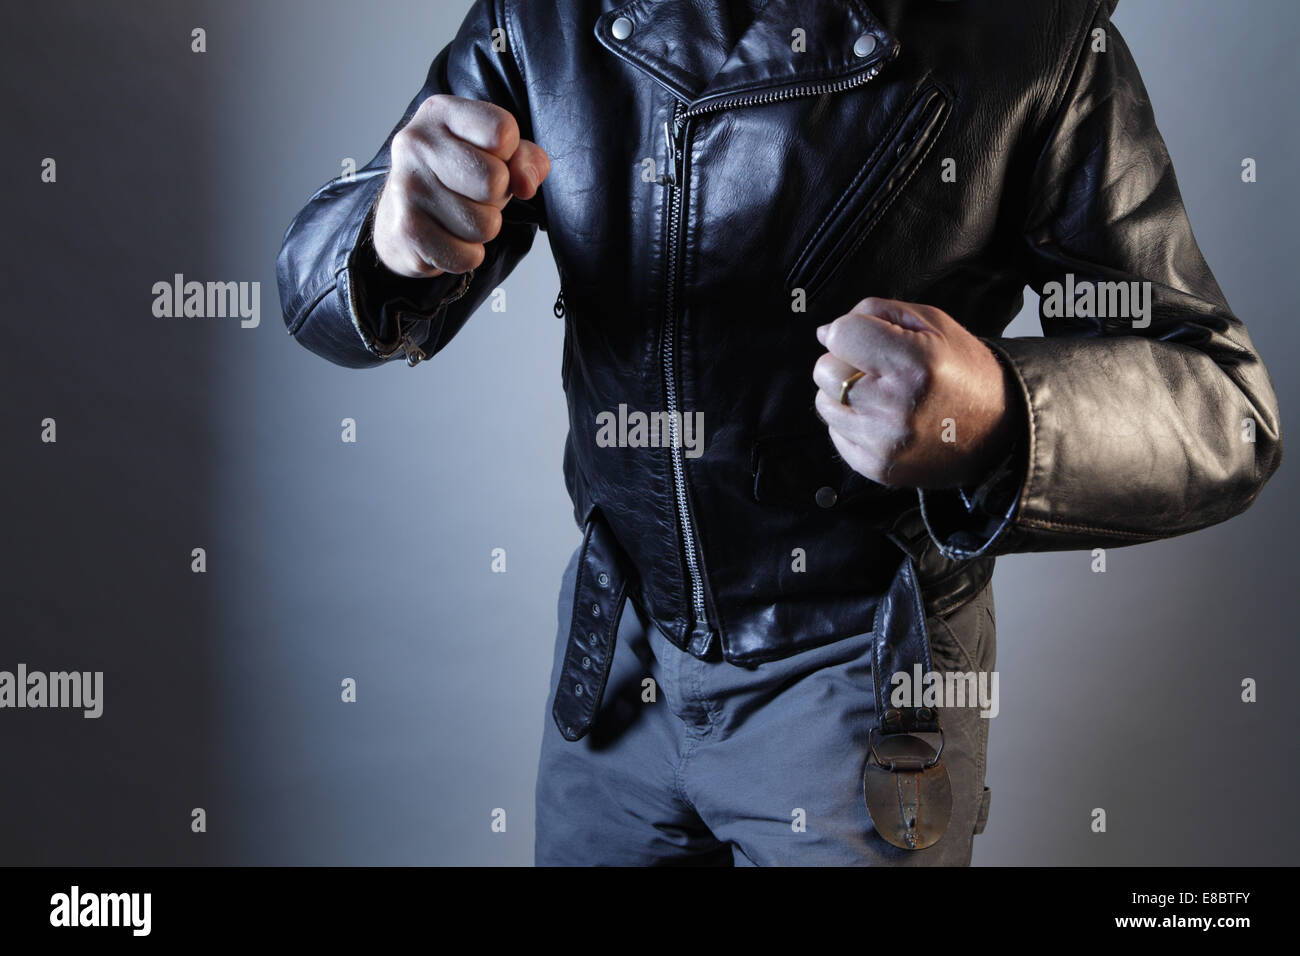 Male threatening violence with fists torso shown - Stock Image